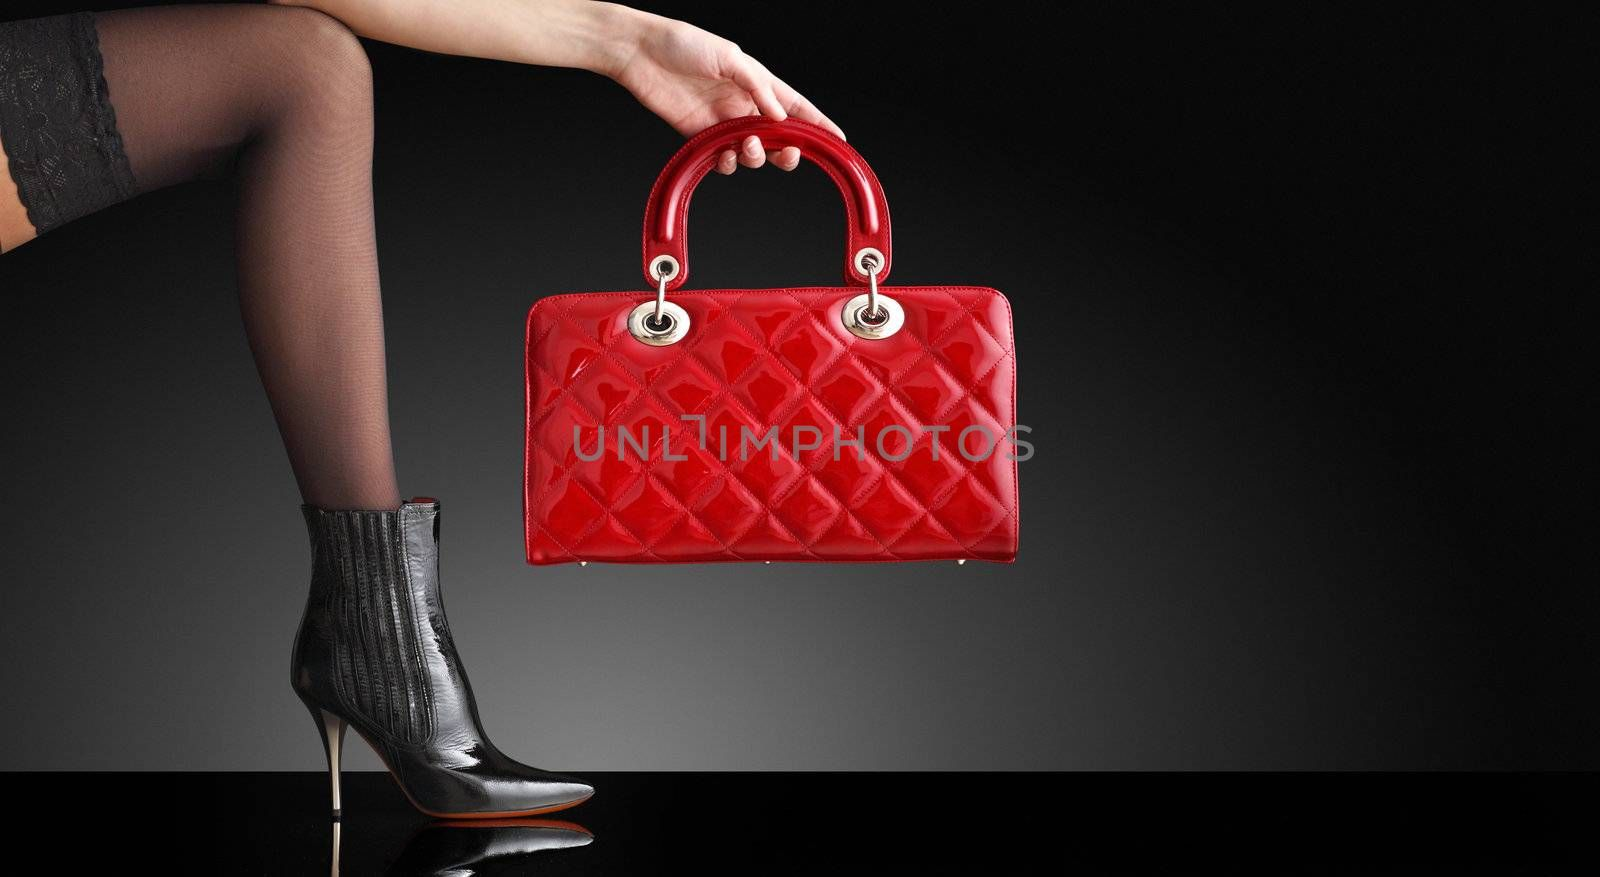 fashionable woman with a red handbag, only legs